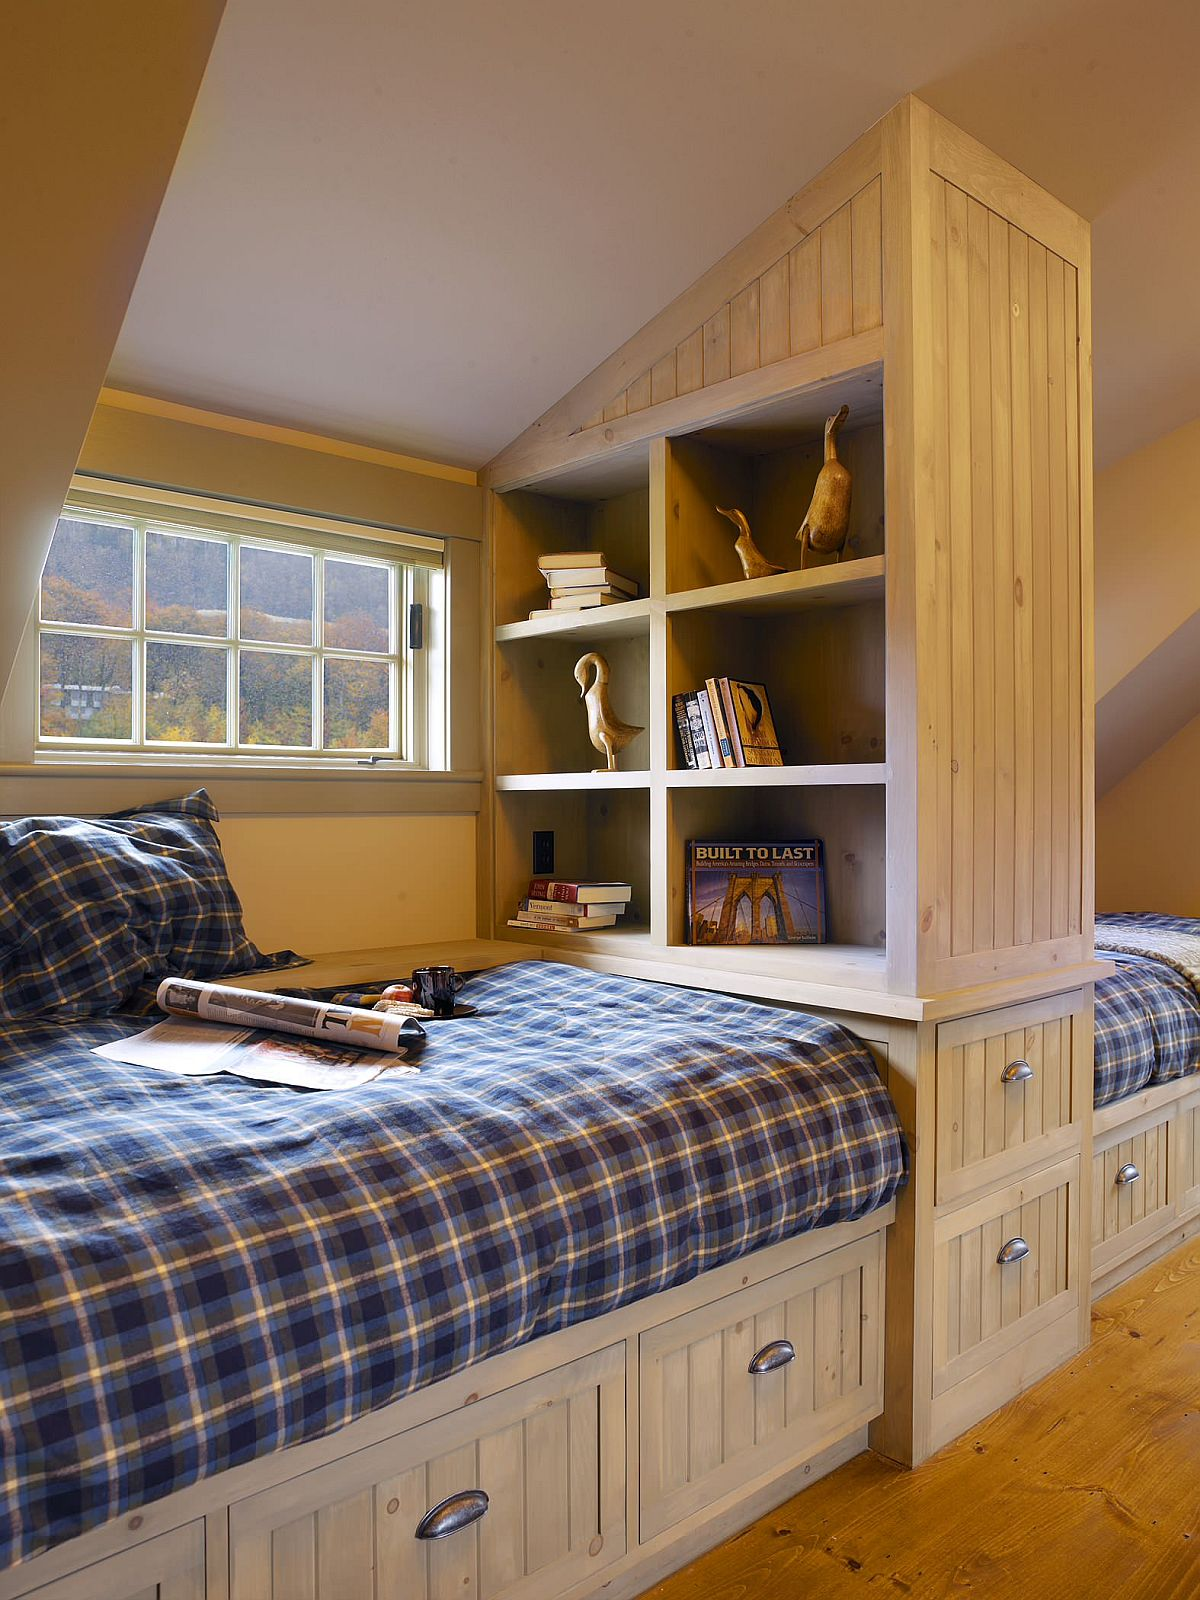 Custom space-savvy attic bedroom design with wooden cabinets and ample storage space